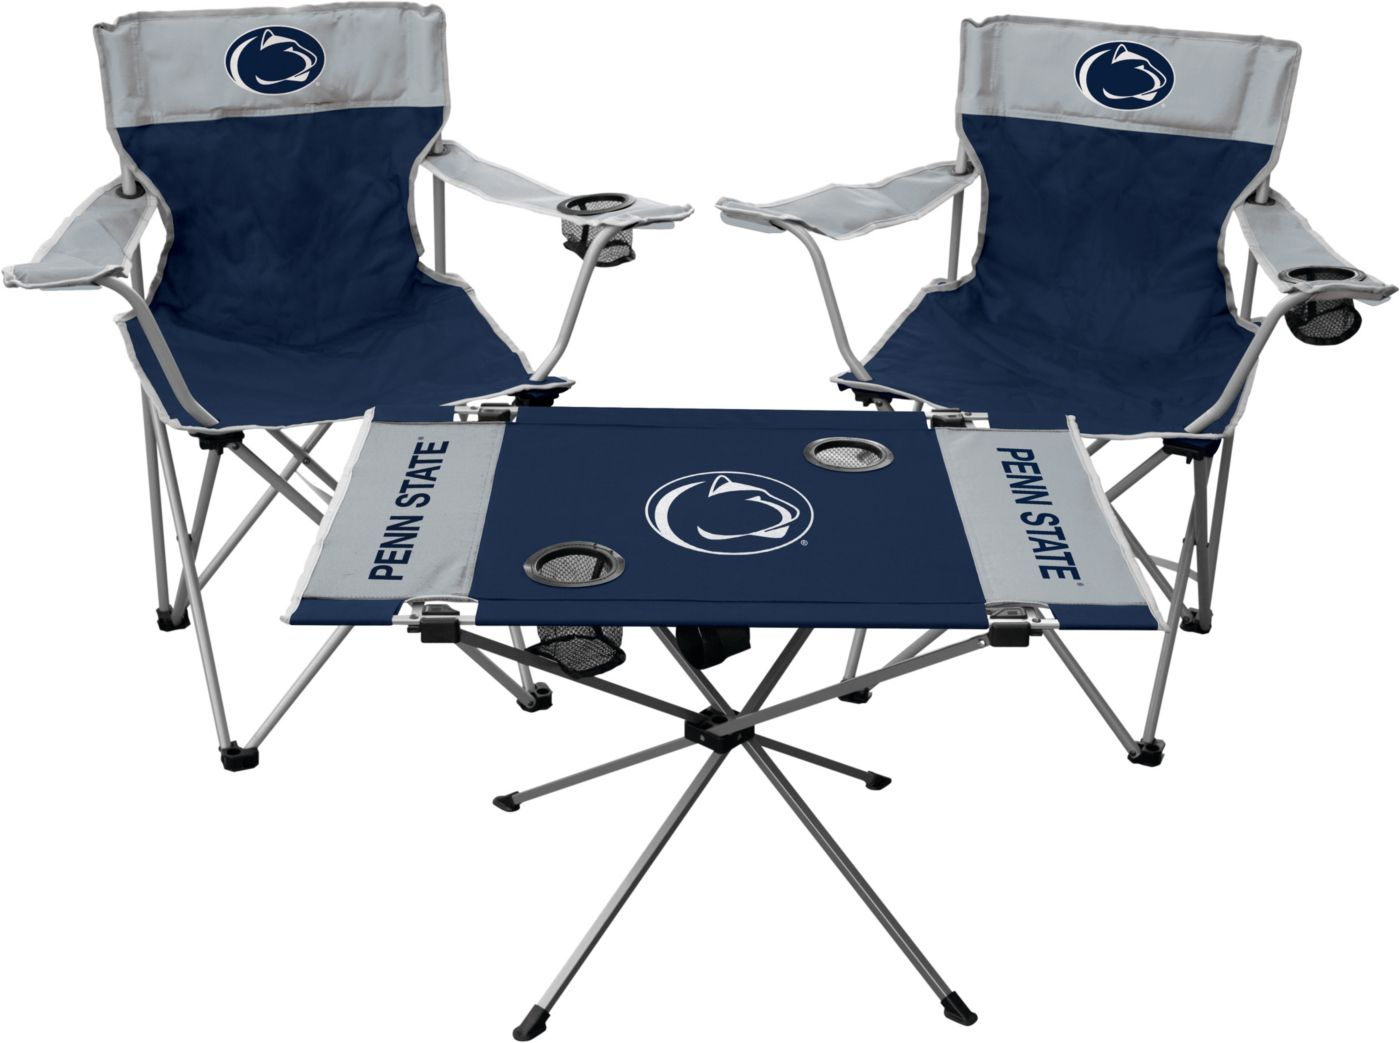 Rawlings Penn State Nittany Lions 3-Piece Tailgate Kit